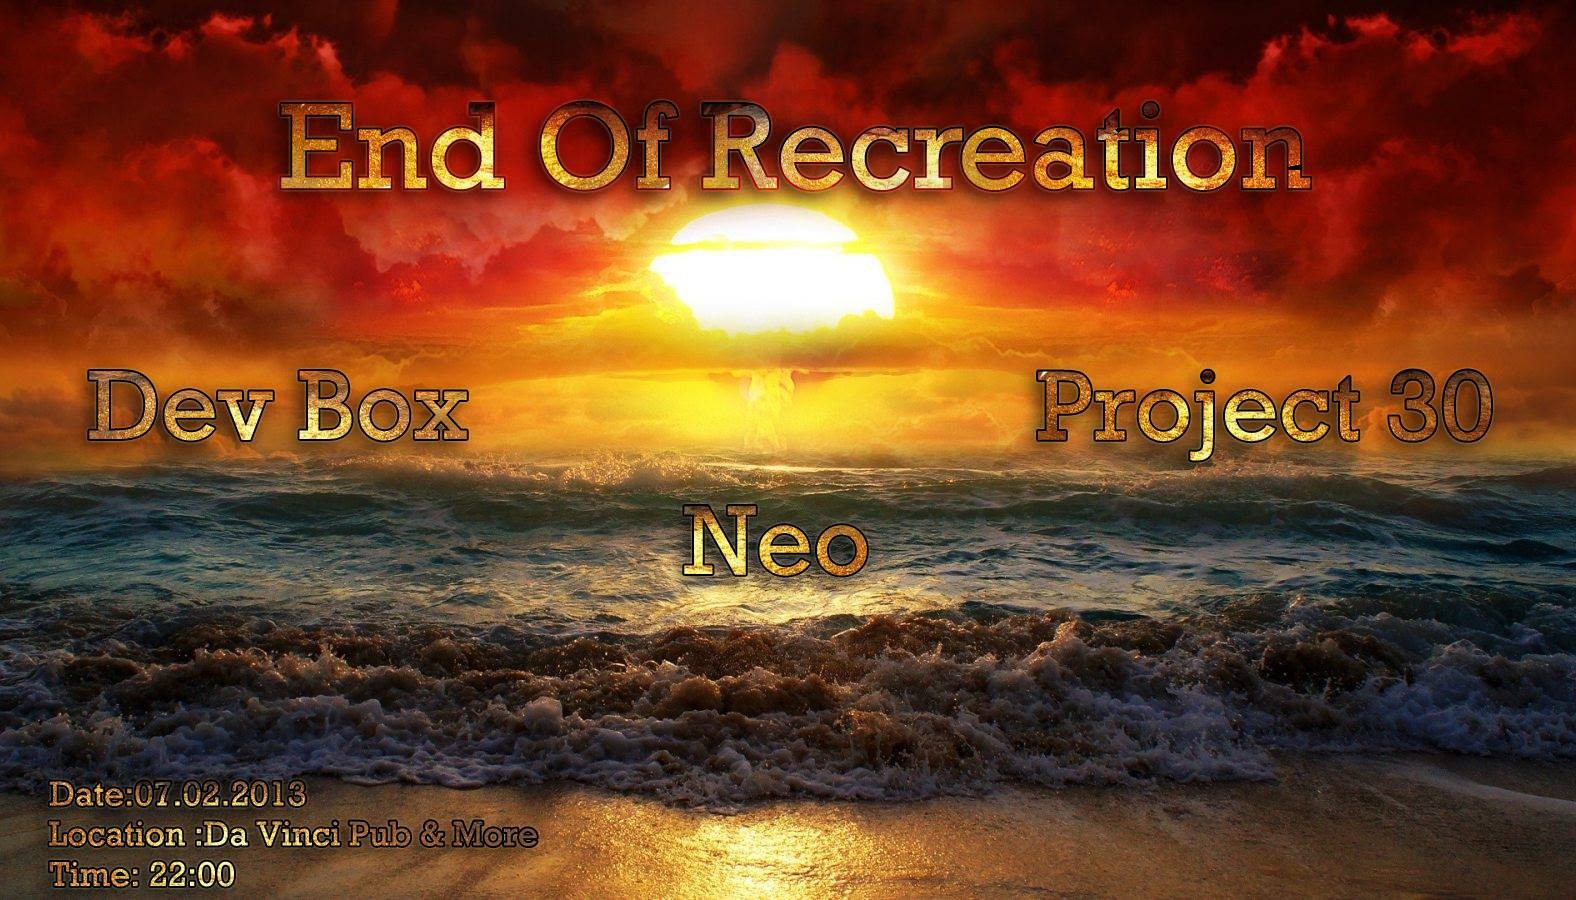 End of recreation